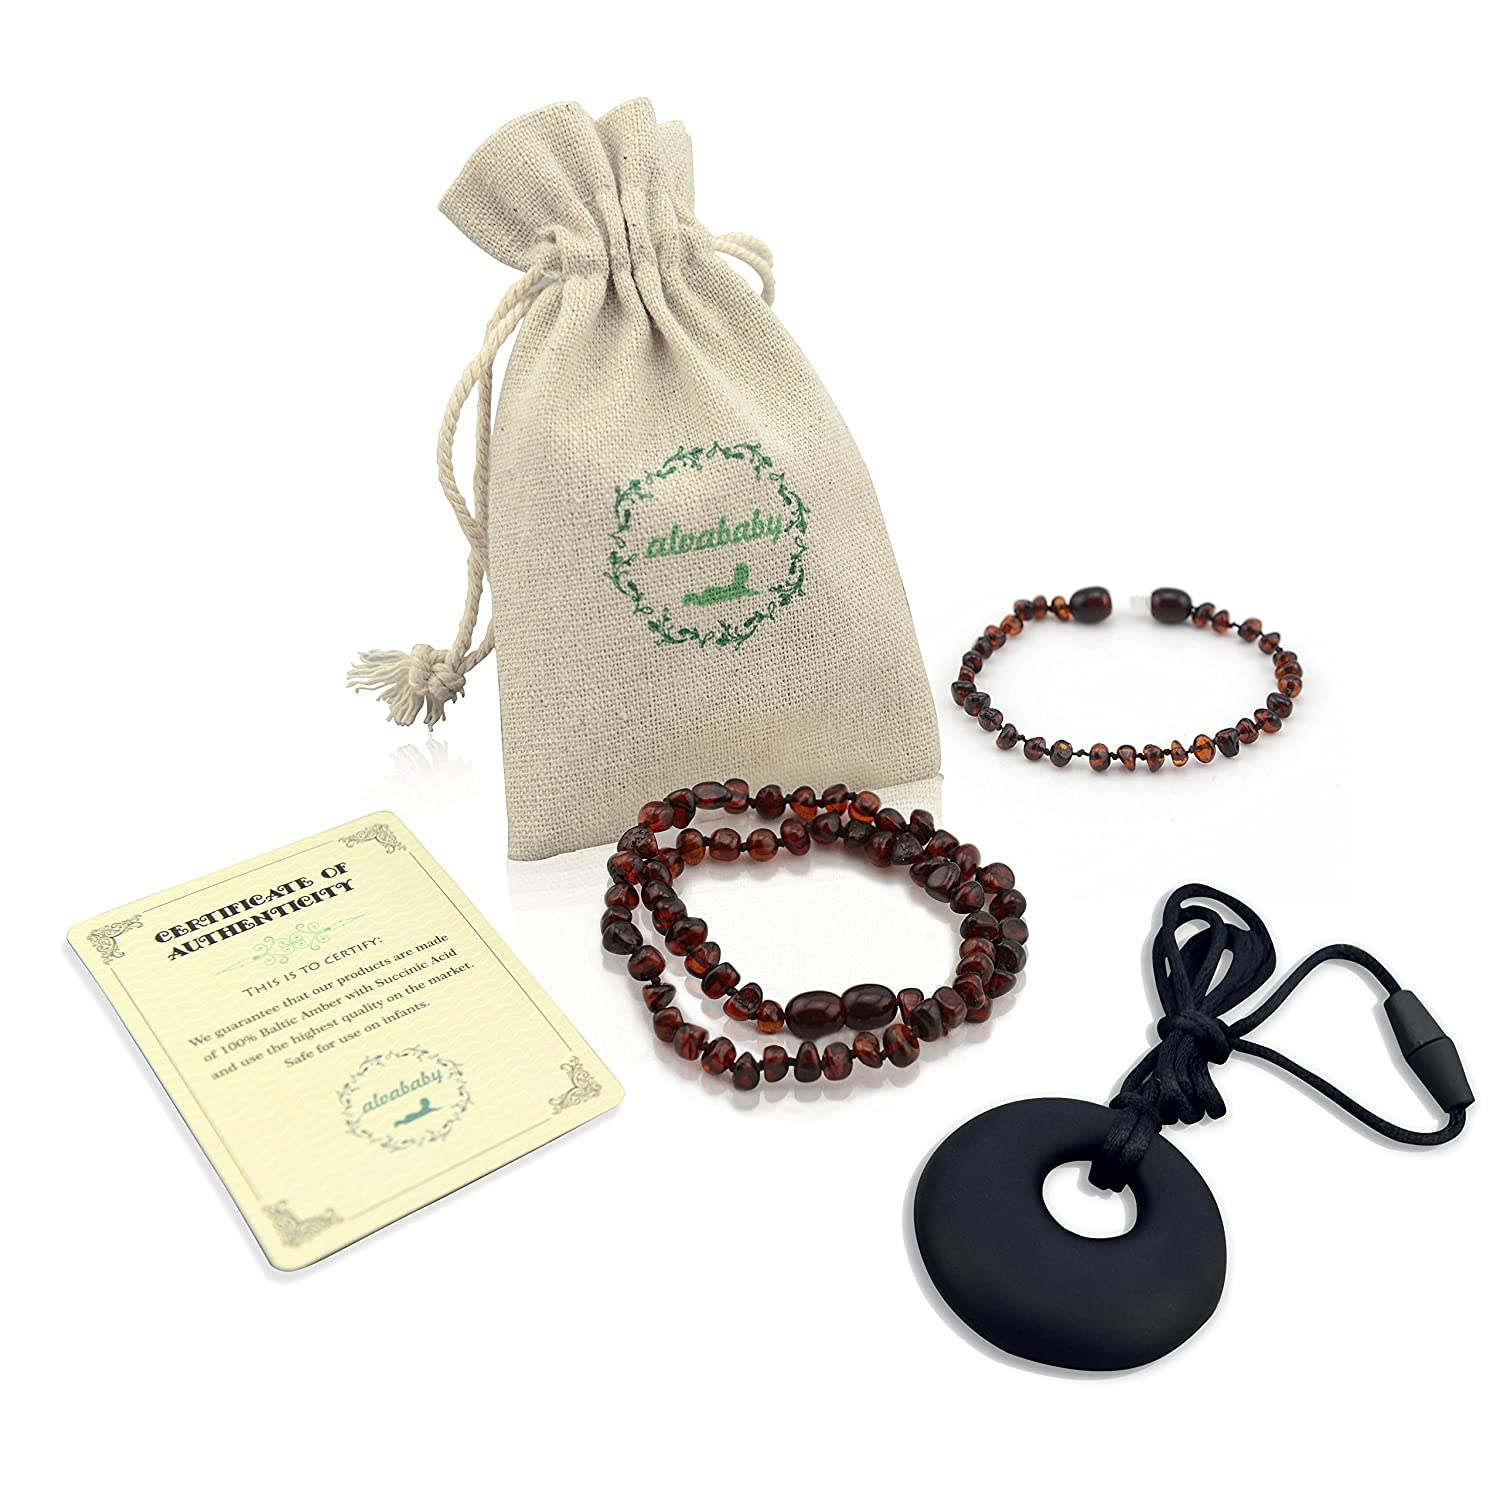 ALVABABY Amber Teething Necklace & Bracelet or Anklet for Babies (Unisex) - Anti Flammatory Drooling & Fussiness Reduce Amber Teething Bracelet or Anklet GNB05-CA